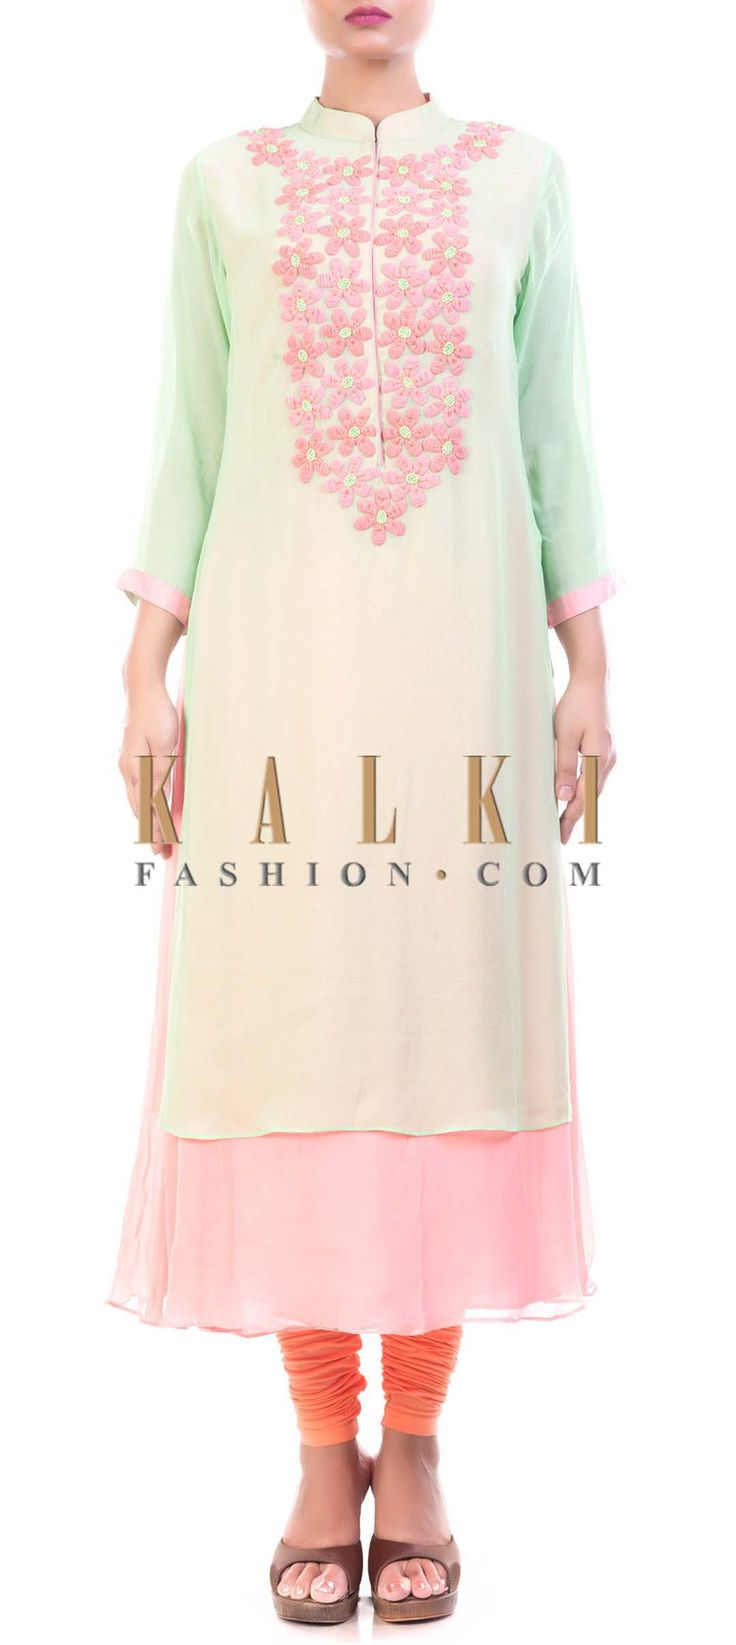 Buy Online from the link below. We ship worldwide (Free Shipping over US$100) Price- $139 Click Anywhere to Tag http://www.kalkifashion.com/green-and-pink-high-neck-tunic-with-chiffon-flowers.html